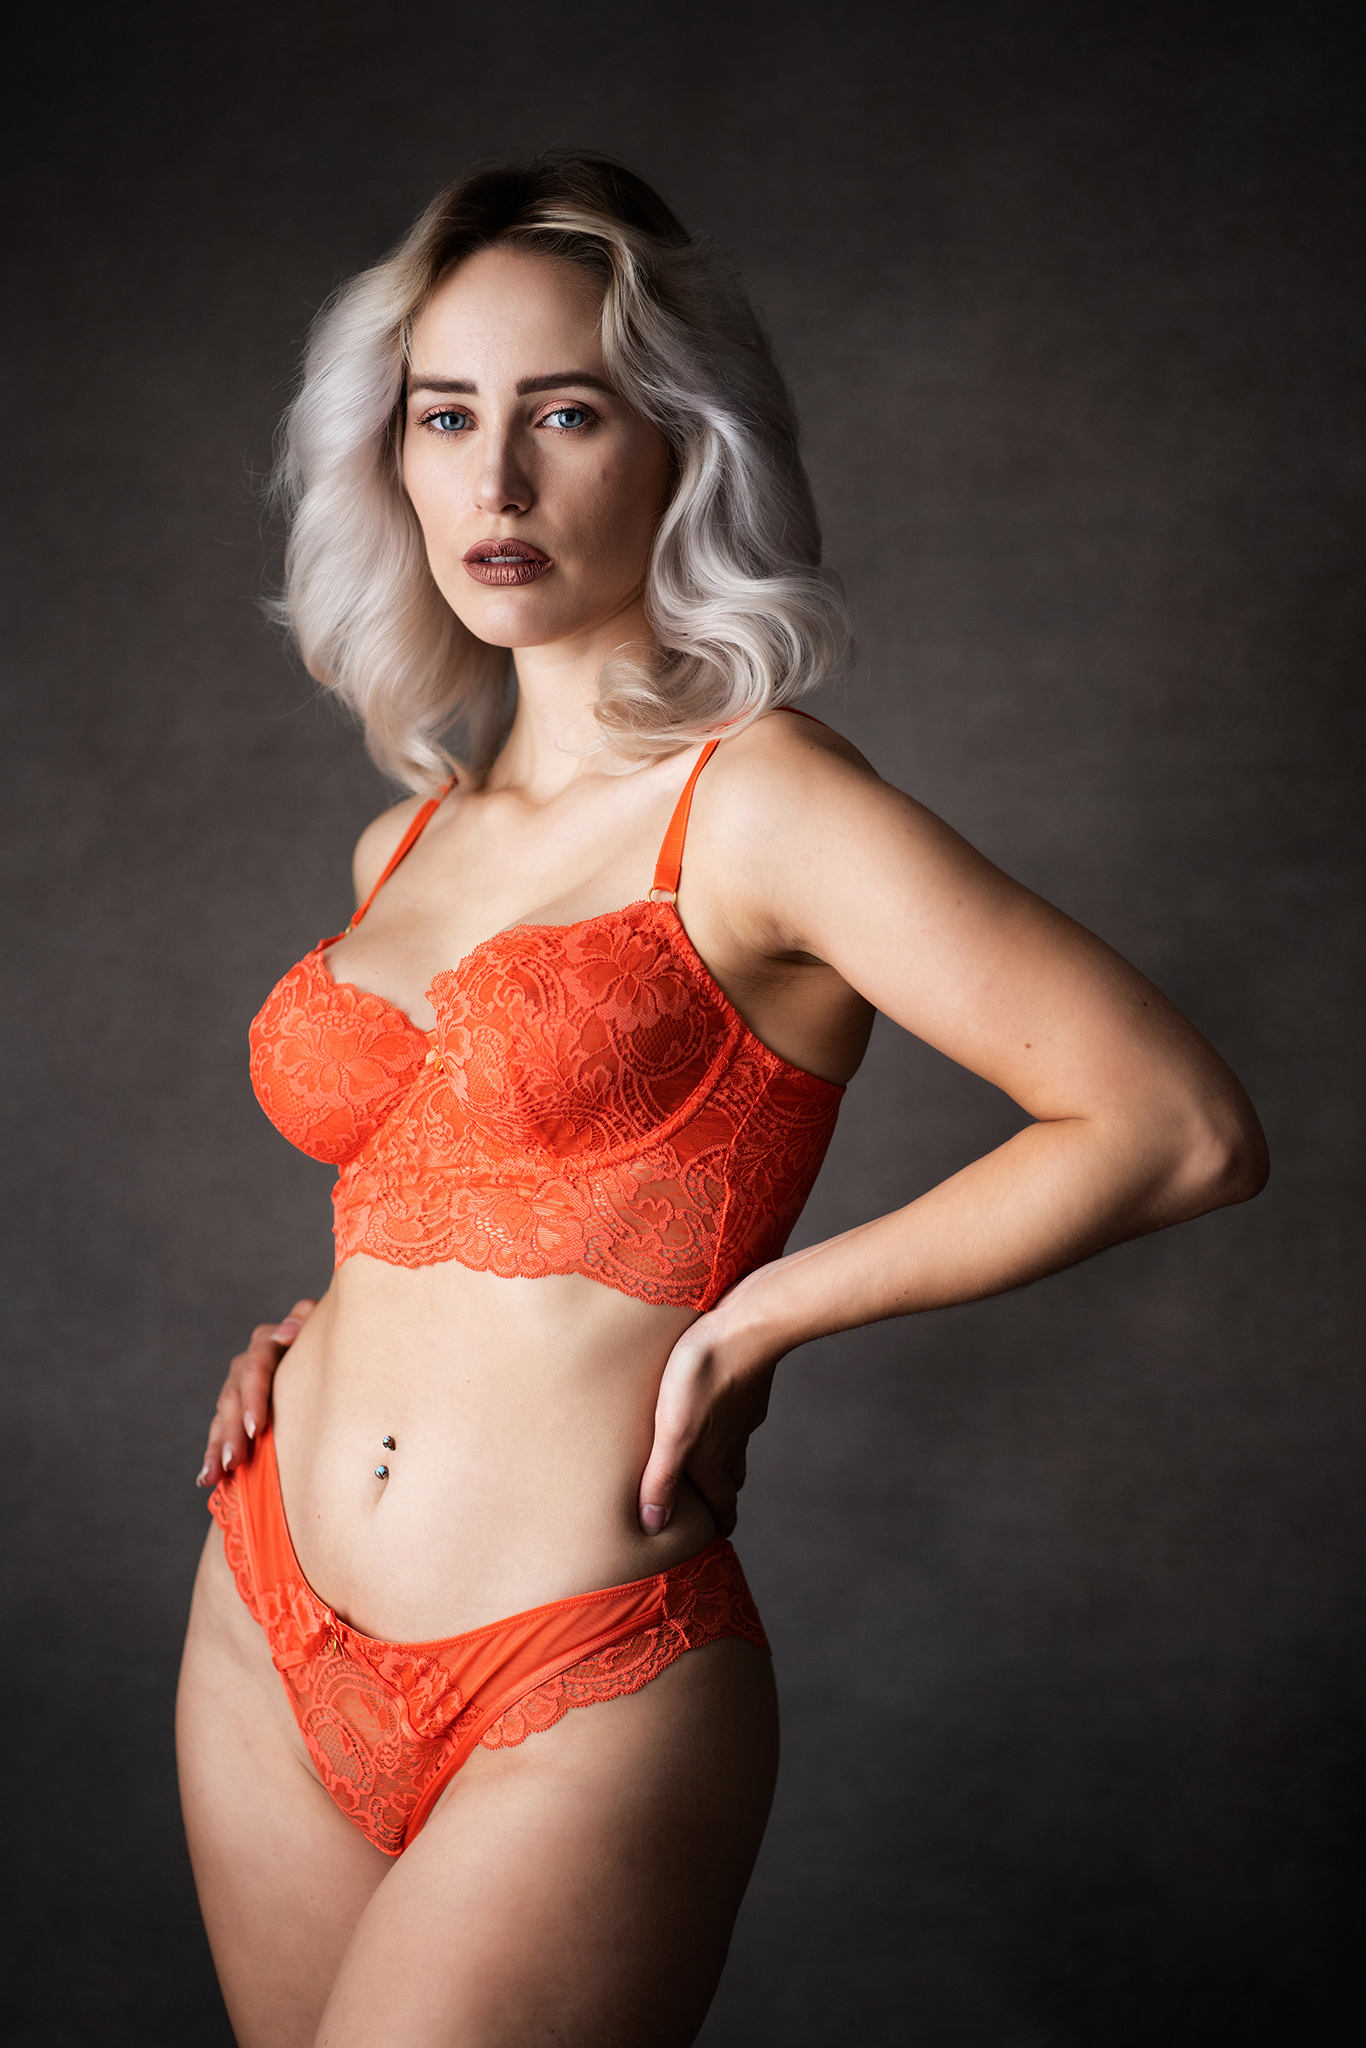 Blonde model in red underwear in studio portrait by Boudoir Photographer Lancashire